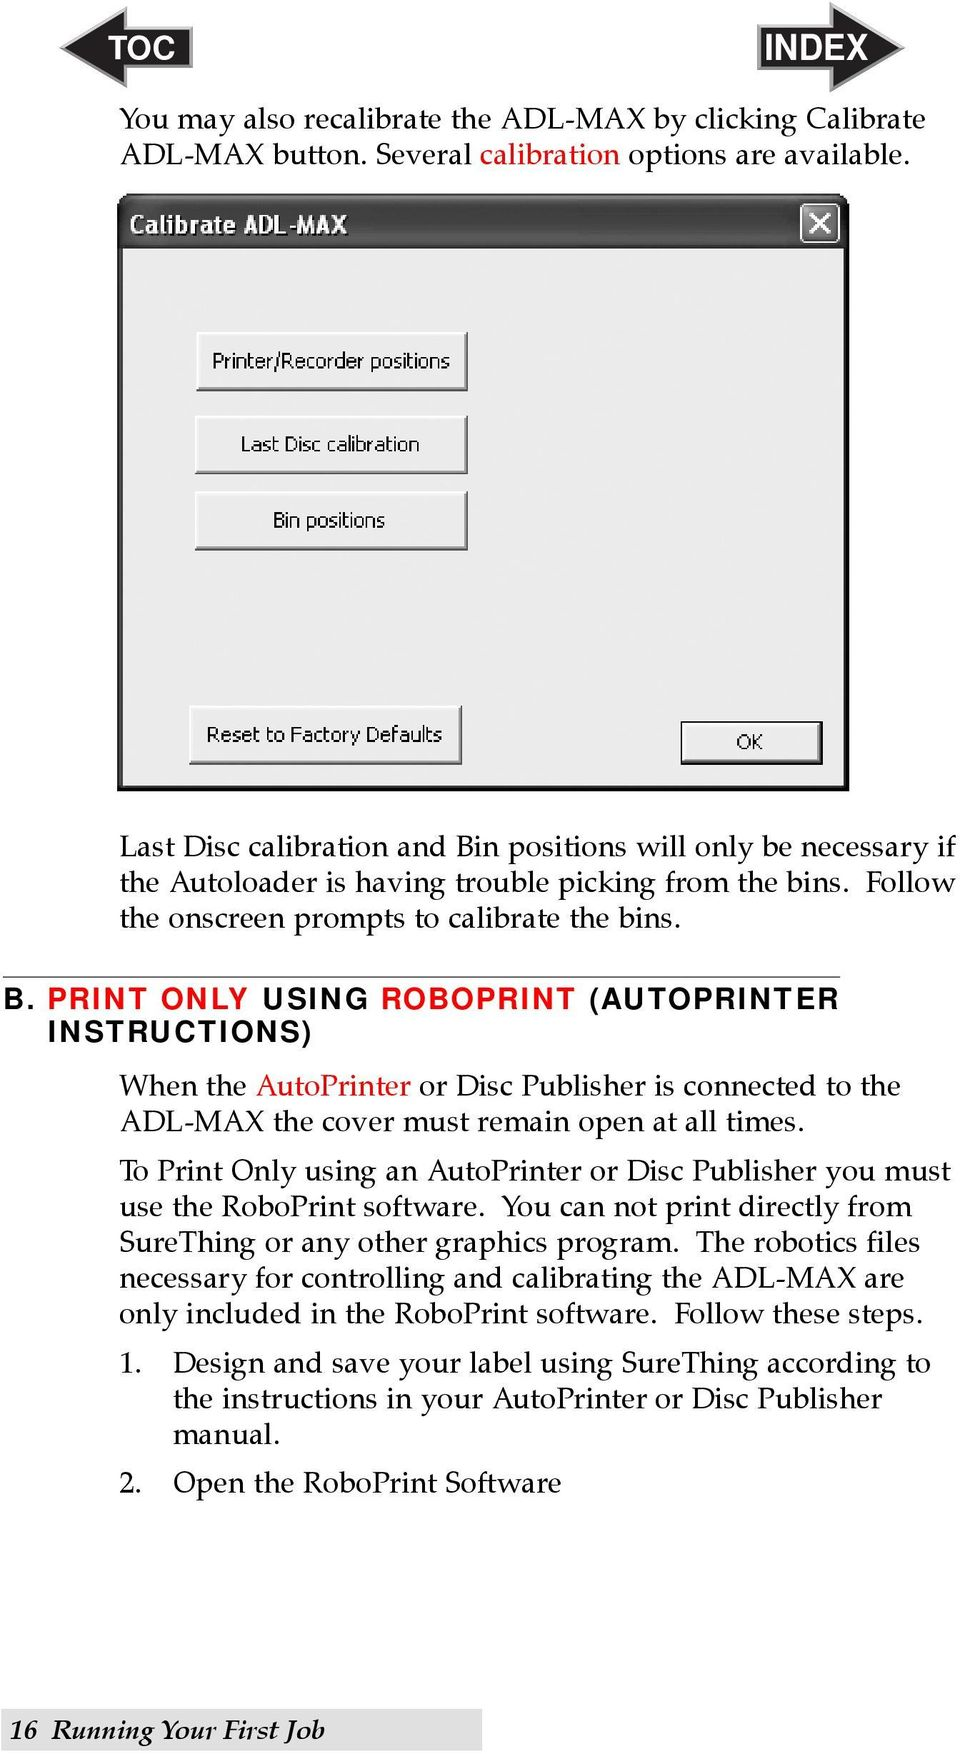 To Print Only using an AutoPrinter or Disc Publisher you must use the RoboPrint software. You can not print directly from SureThing or any other graphics program.